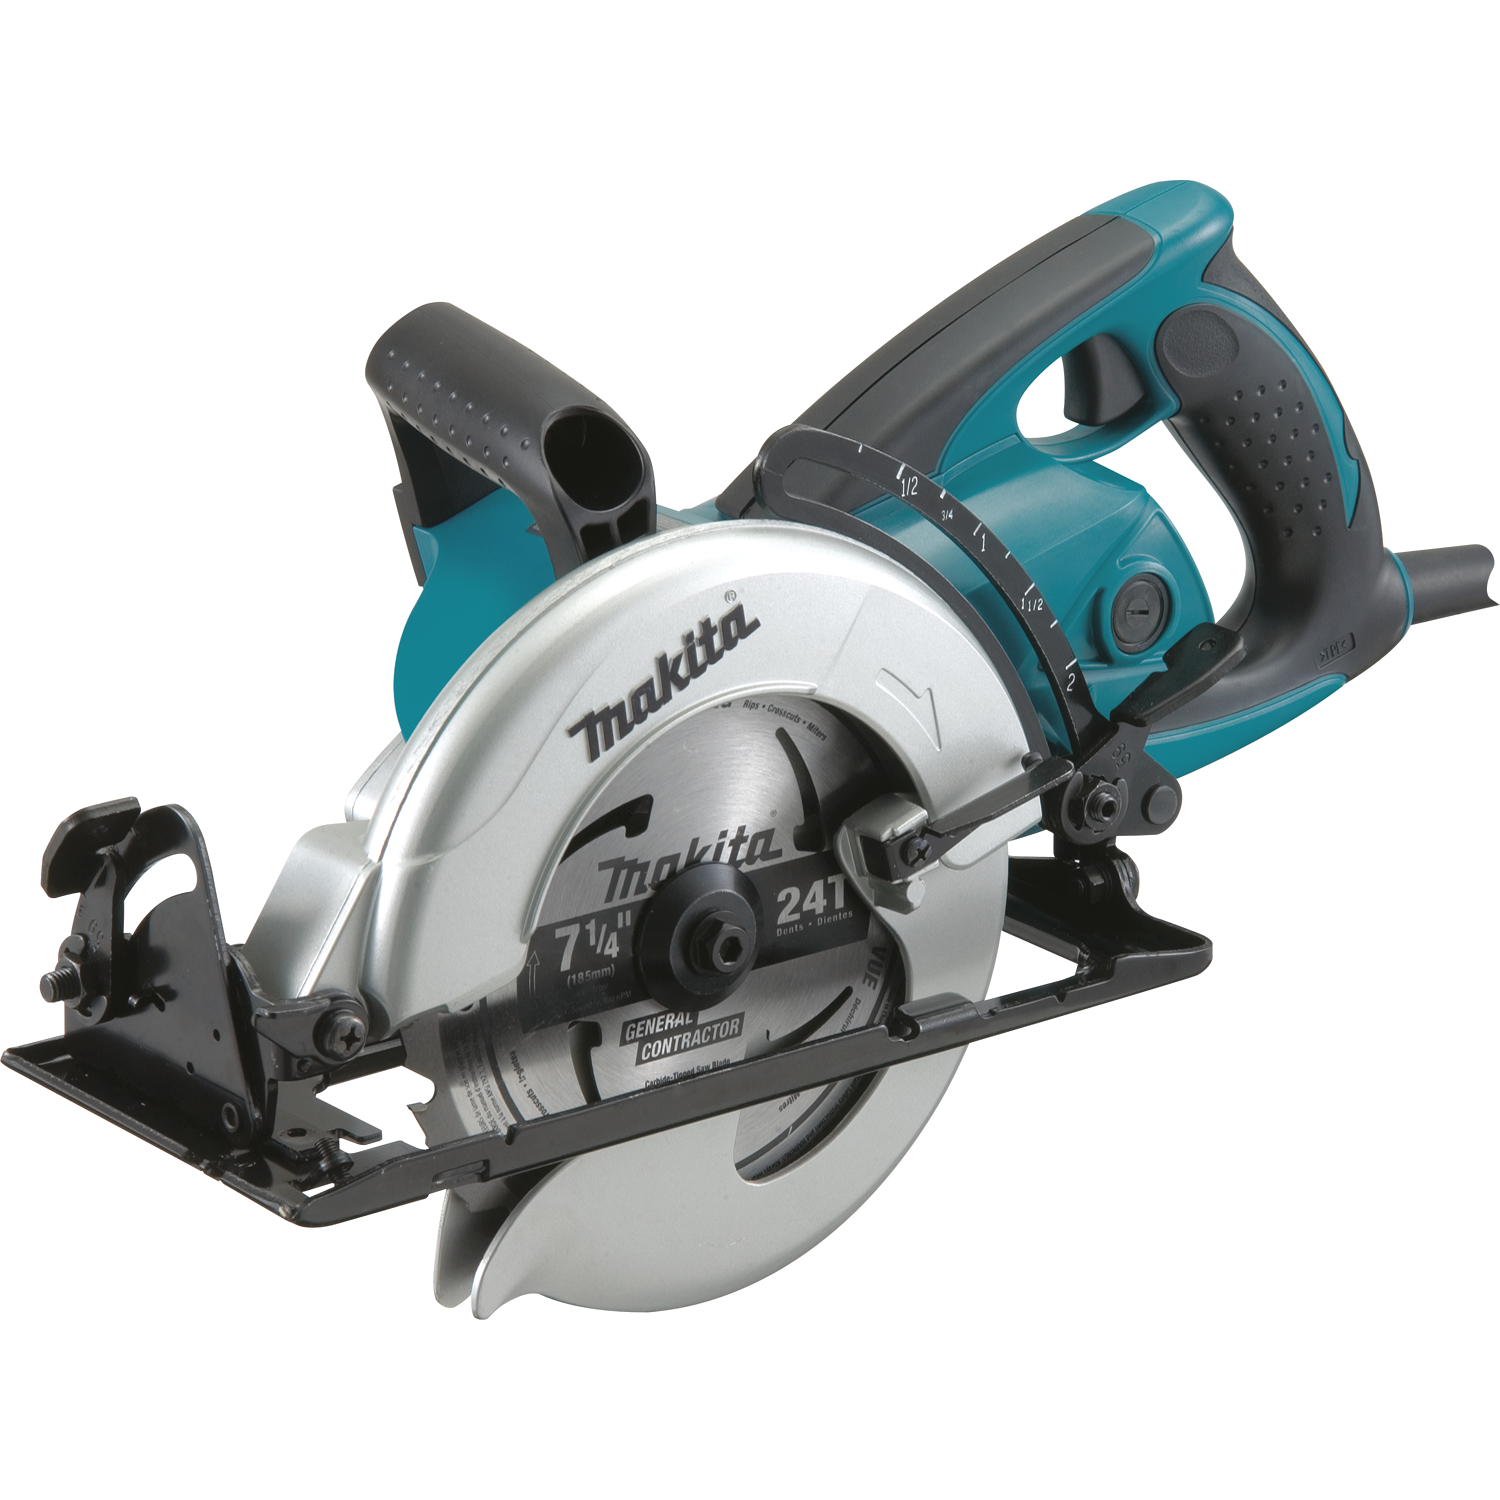 Makita usa product details 5477nb 5477nb greentooth